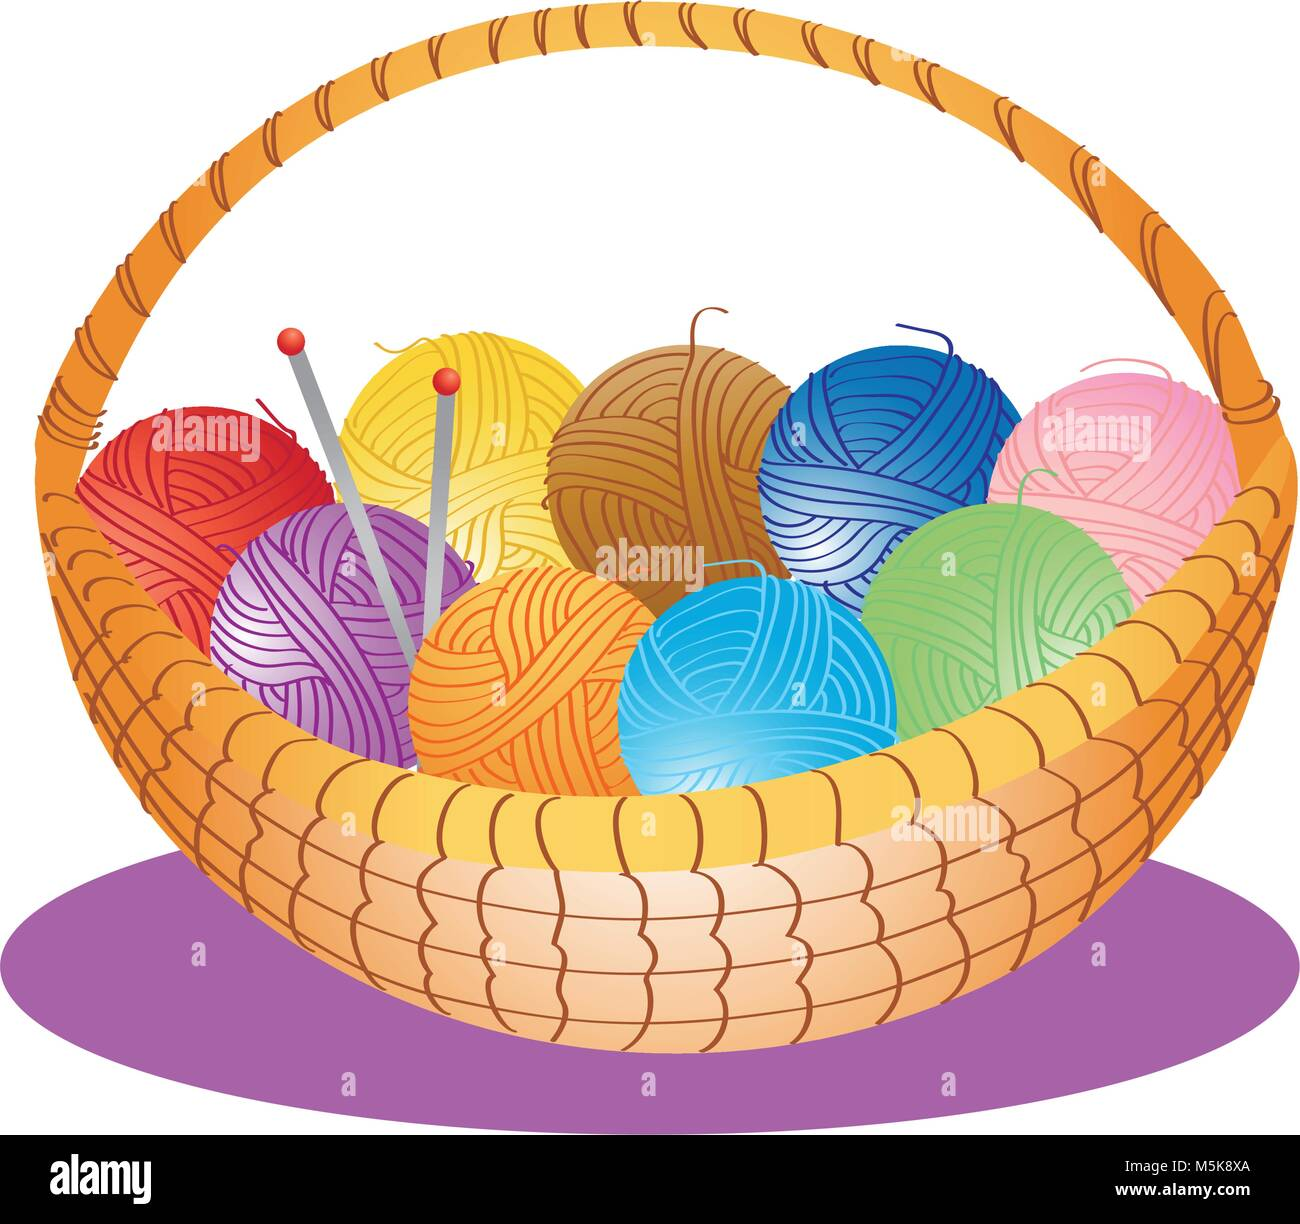 A cartoon illustration of a basket of wool and knitting needles - Stock Vector